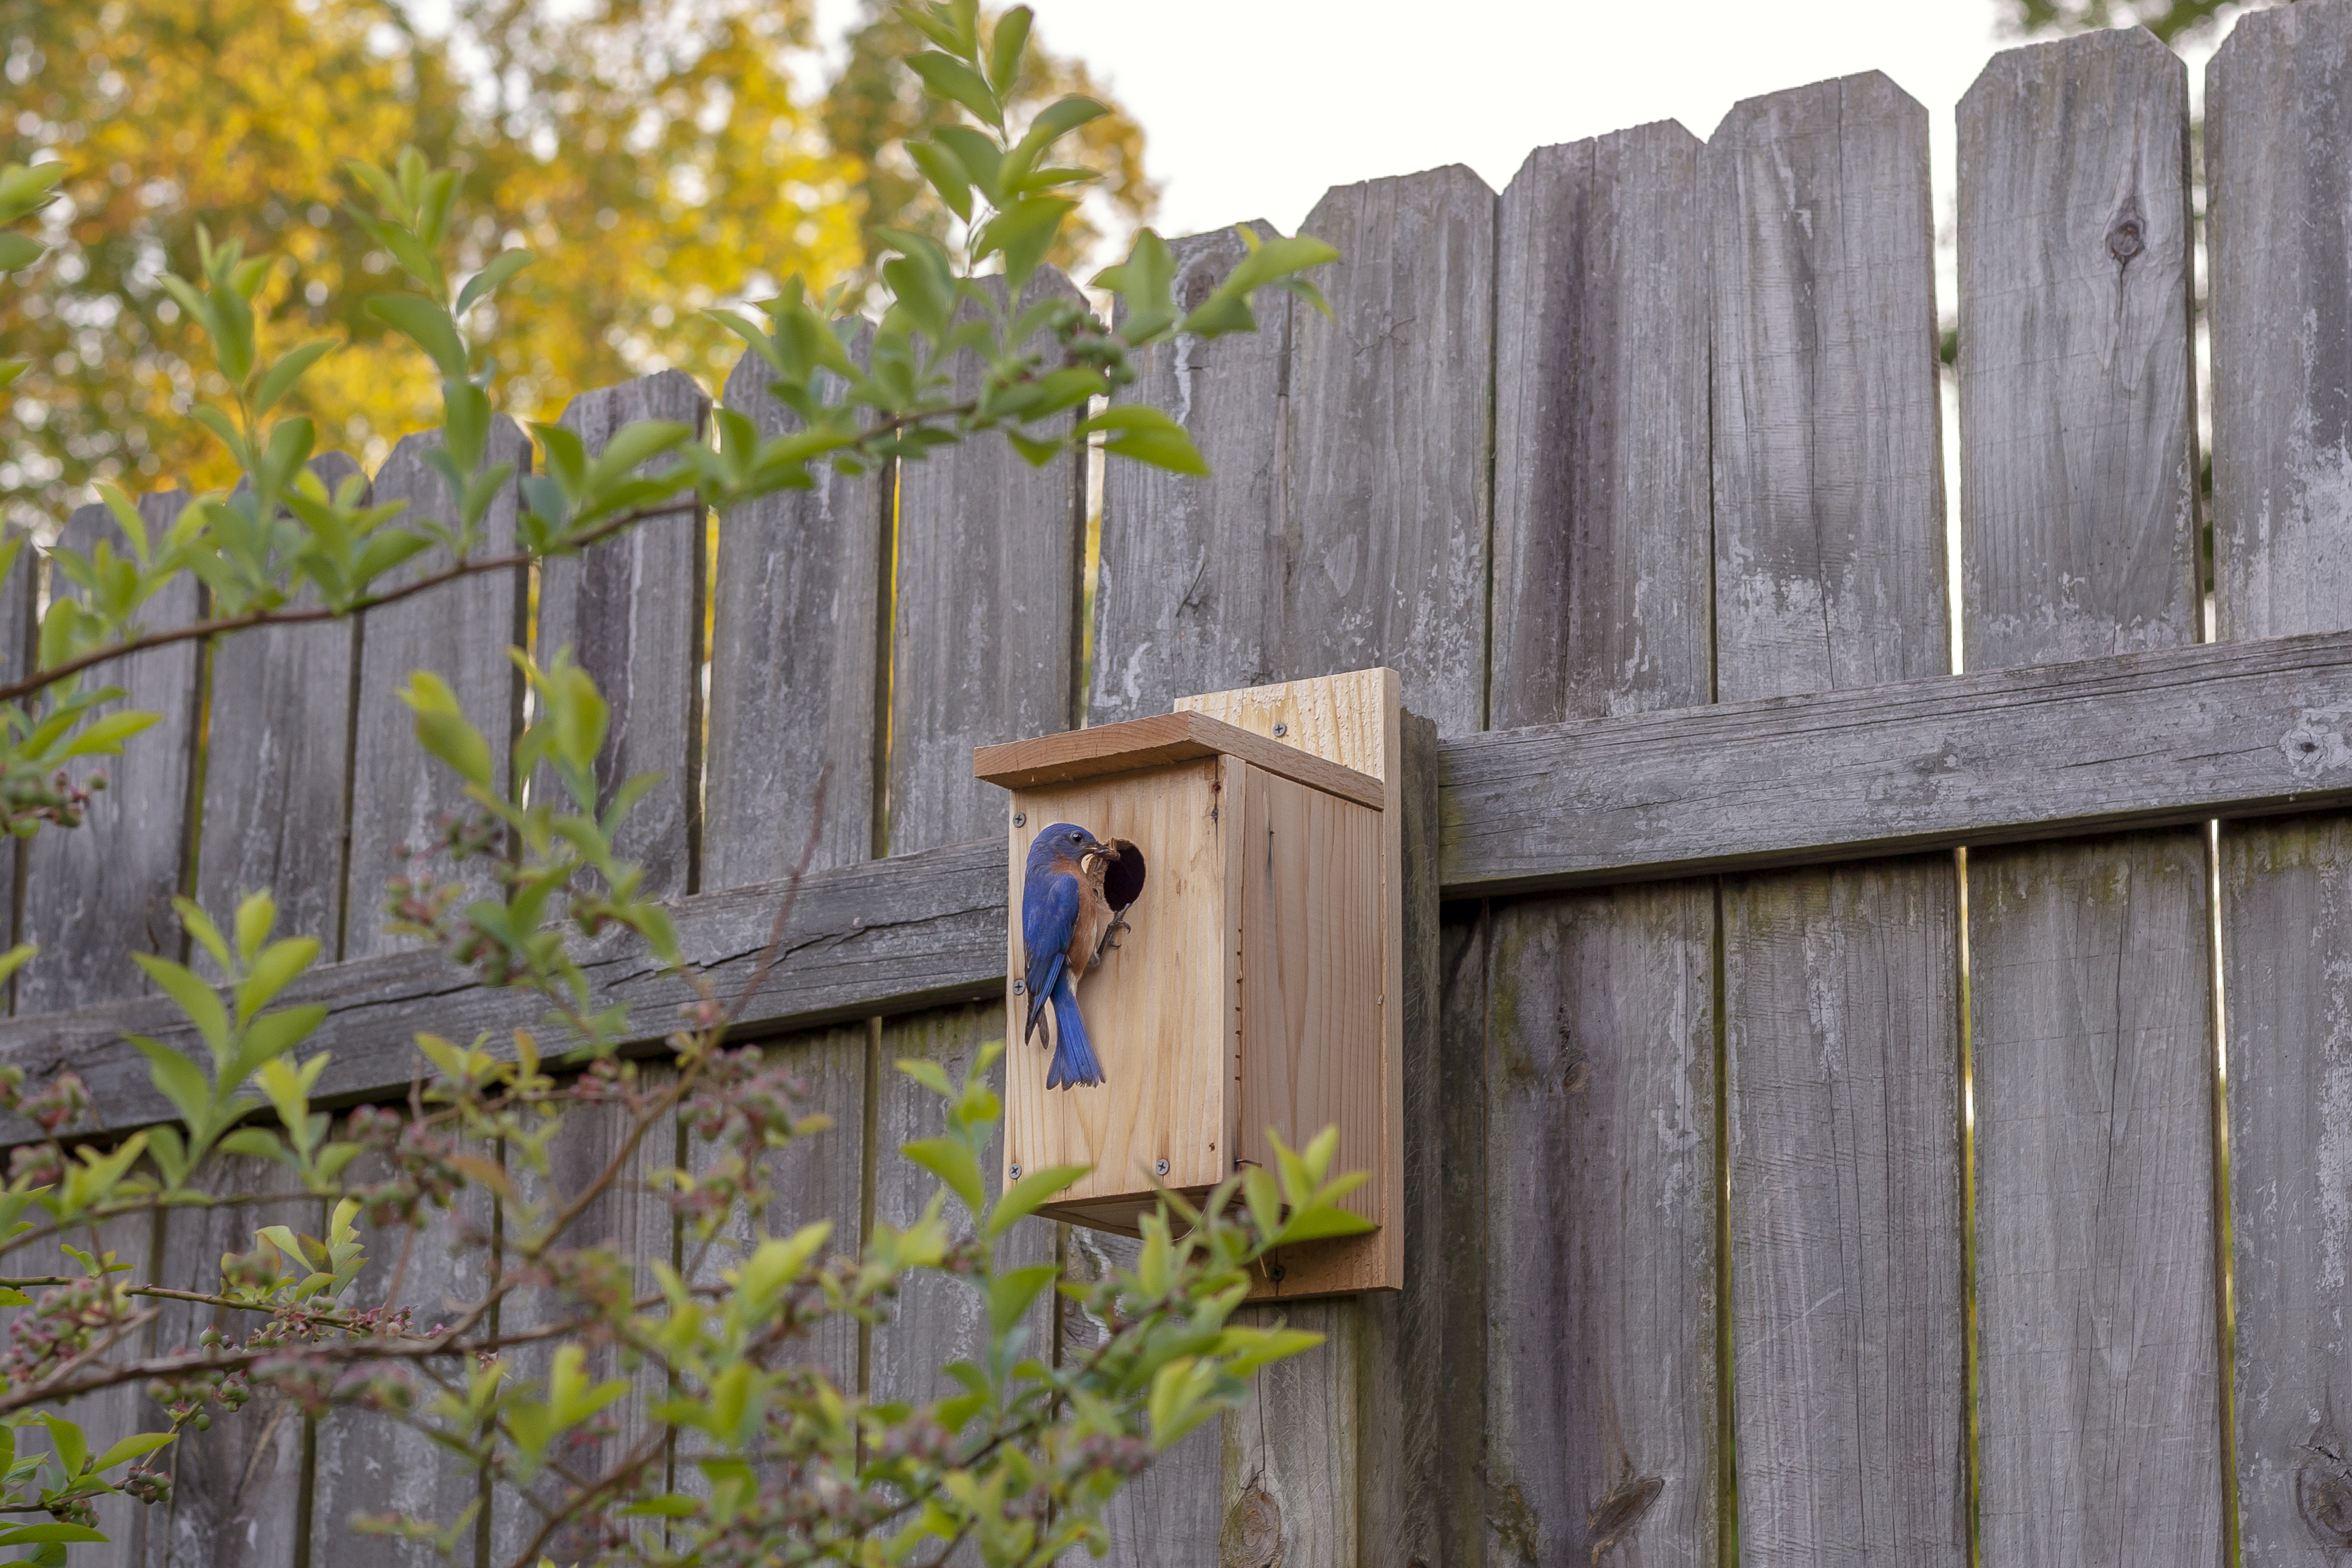 Male Bluebird in Birdhouse